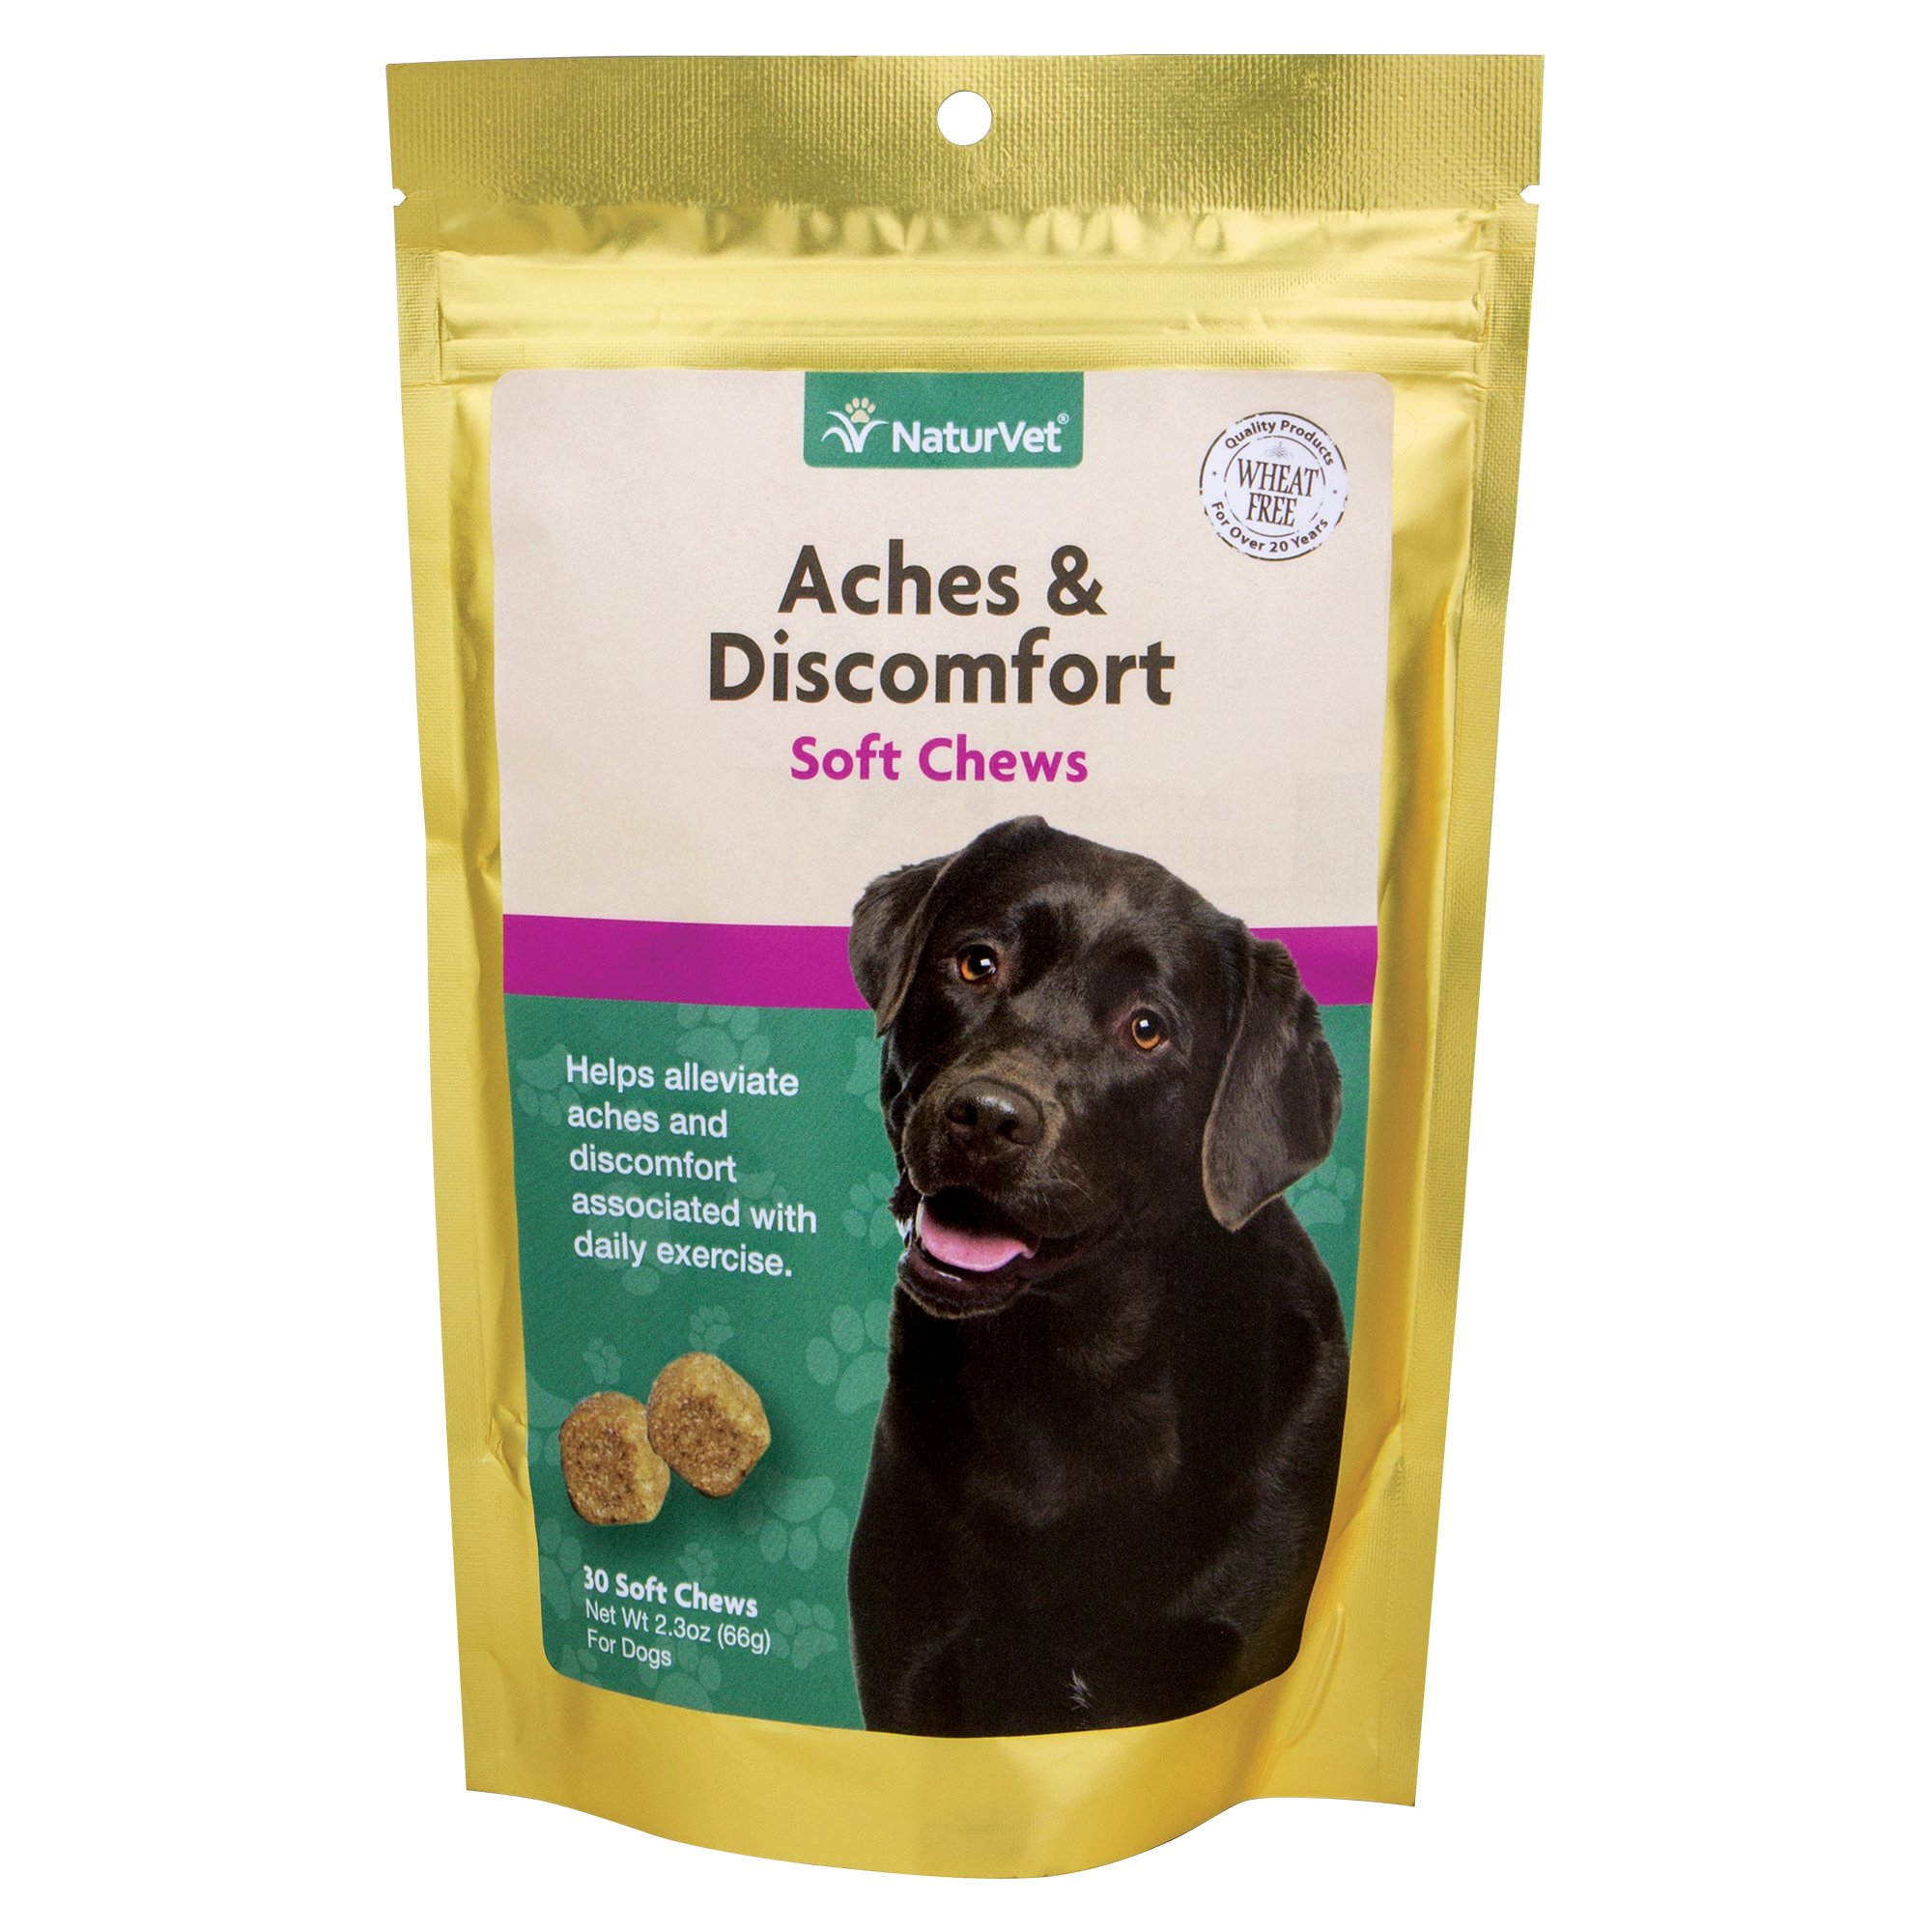 NaturVet Aches & Discomfort Hip & Joint Health Soft Chews for Dogs